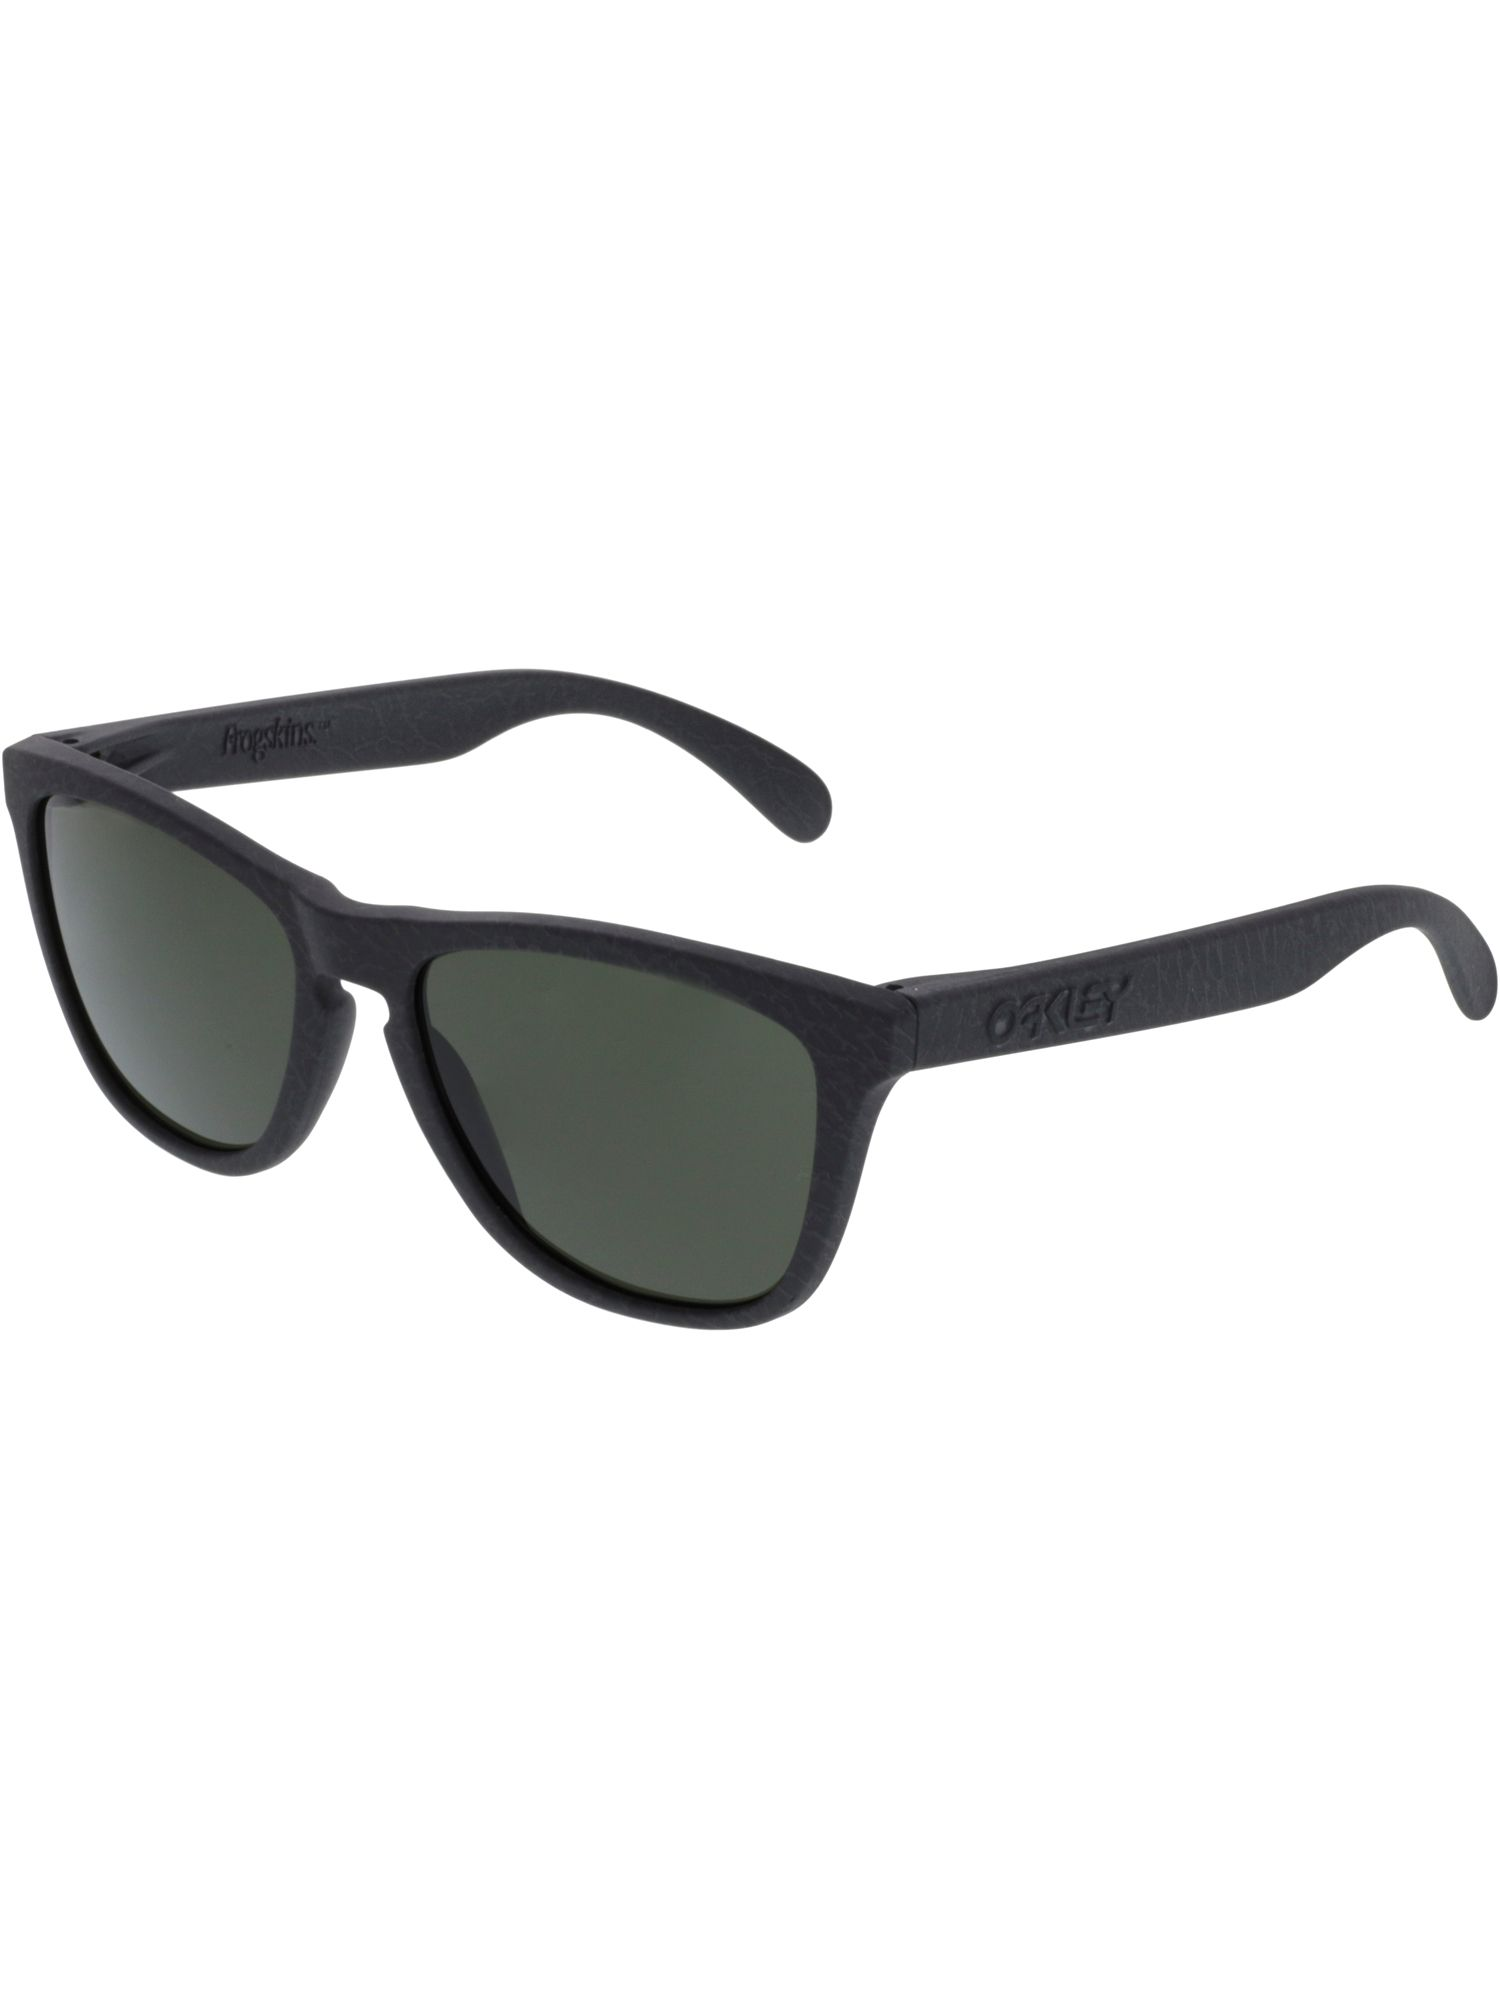 5c8693b1905fe OAKLEY OAKLEY MEN S MIRRORED FROGSKINS OO9013-75 BLACK RECTANGLE SUNGLASSES.   oakley